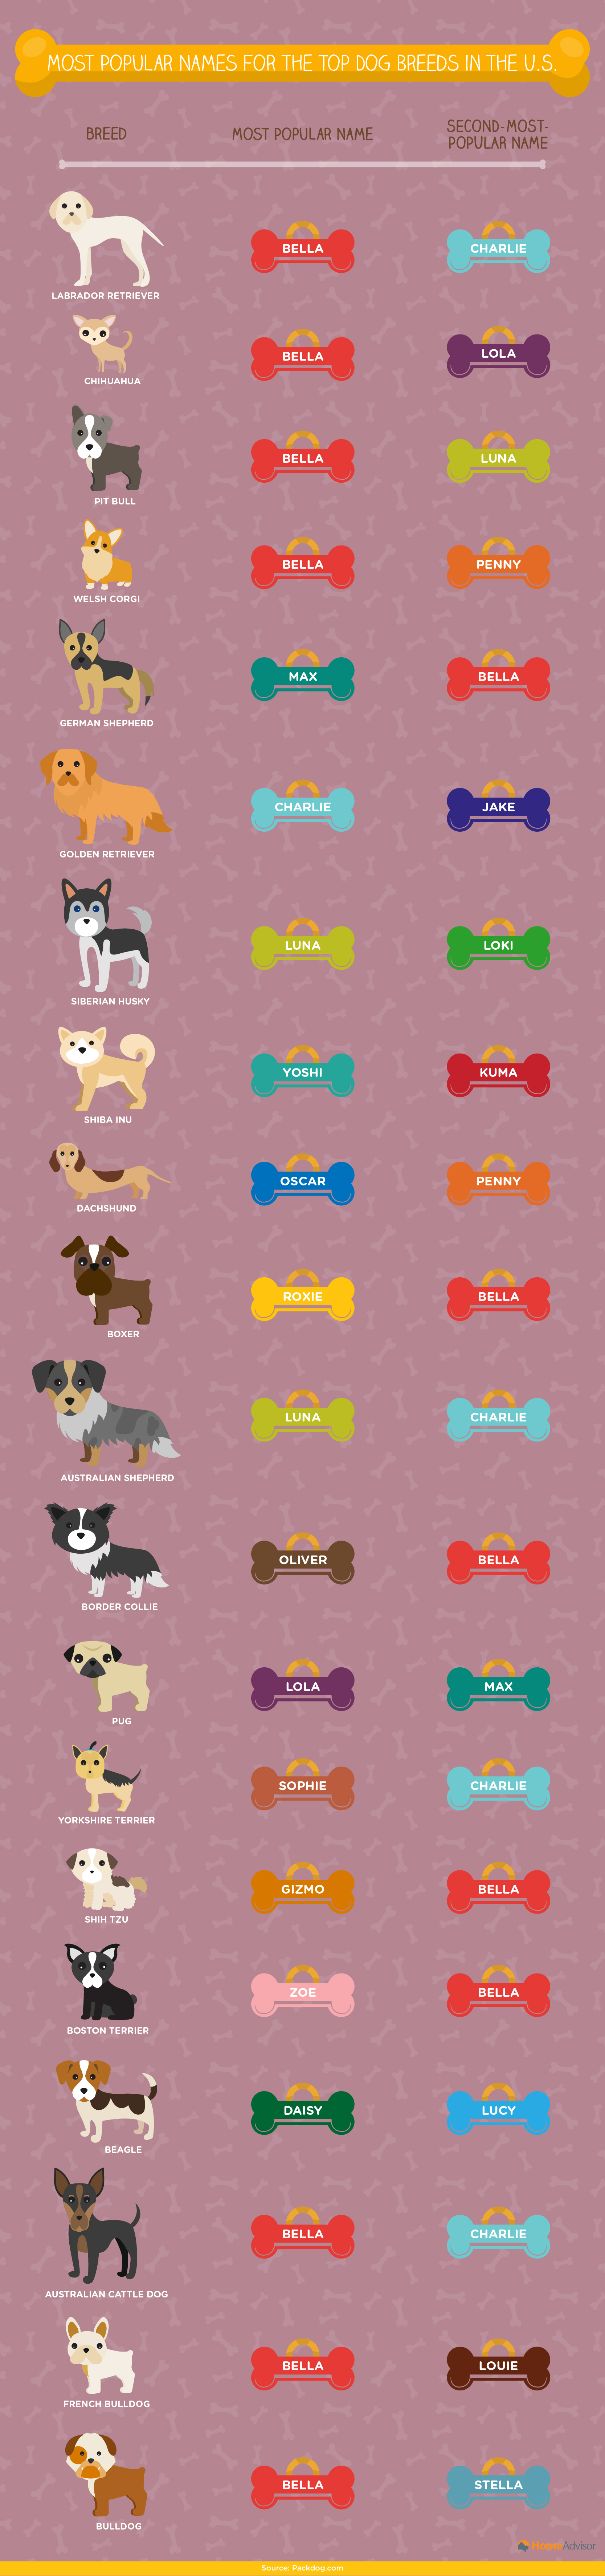 Most popular names by top breeds